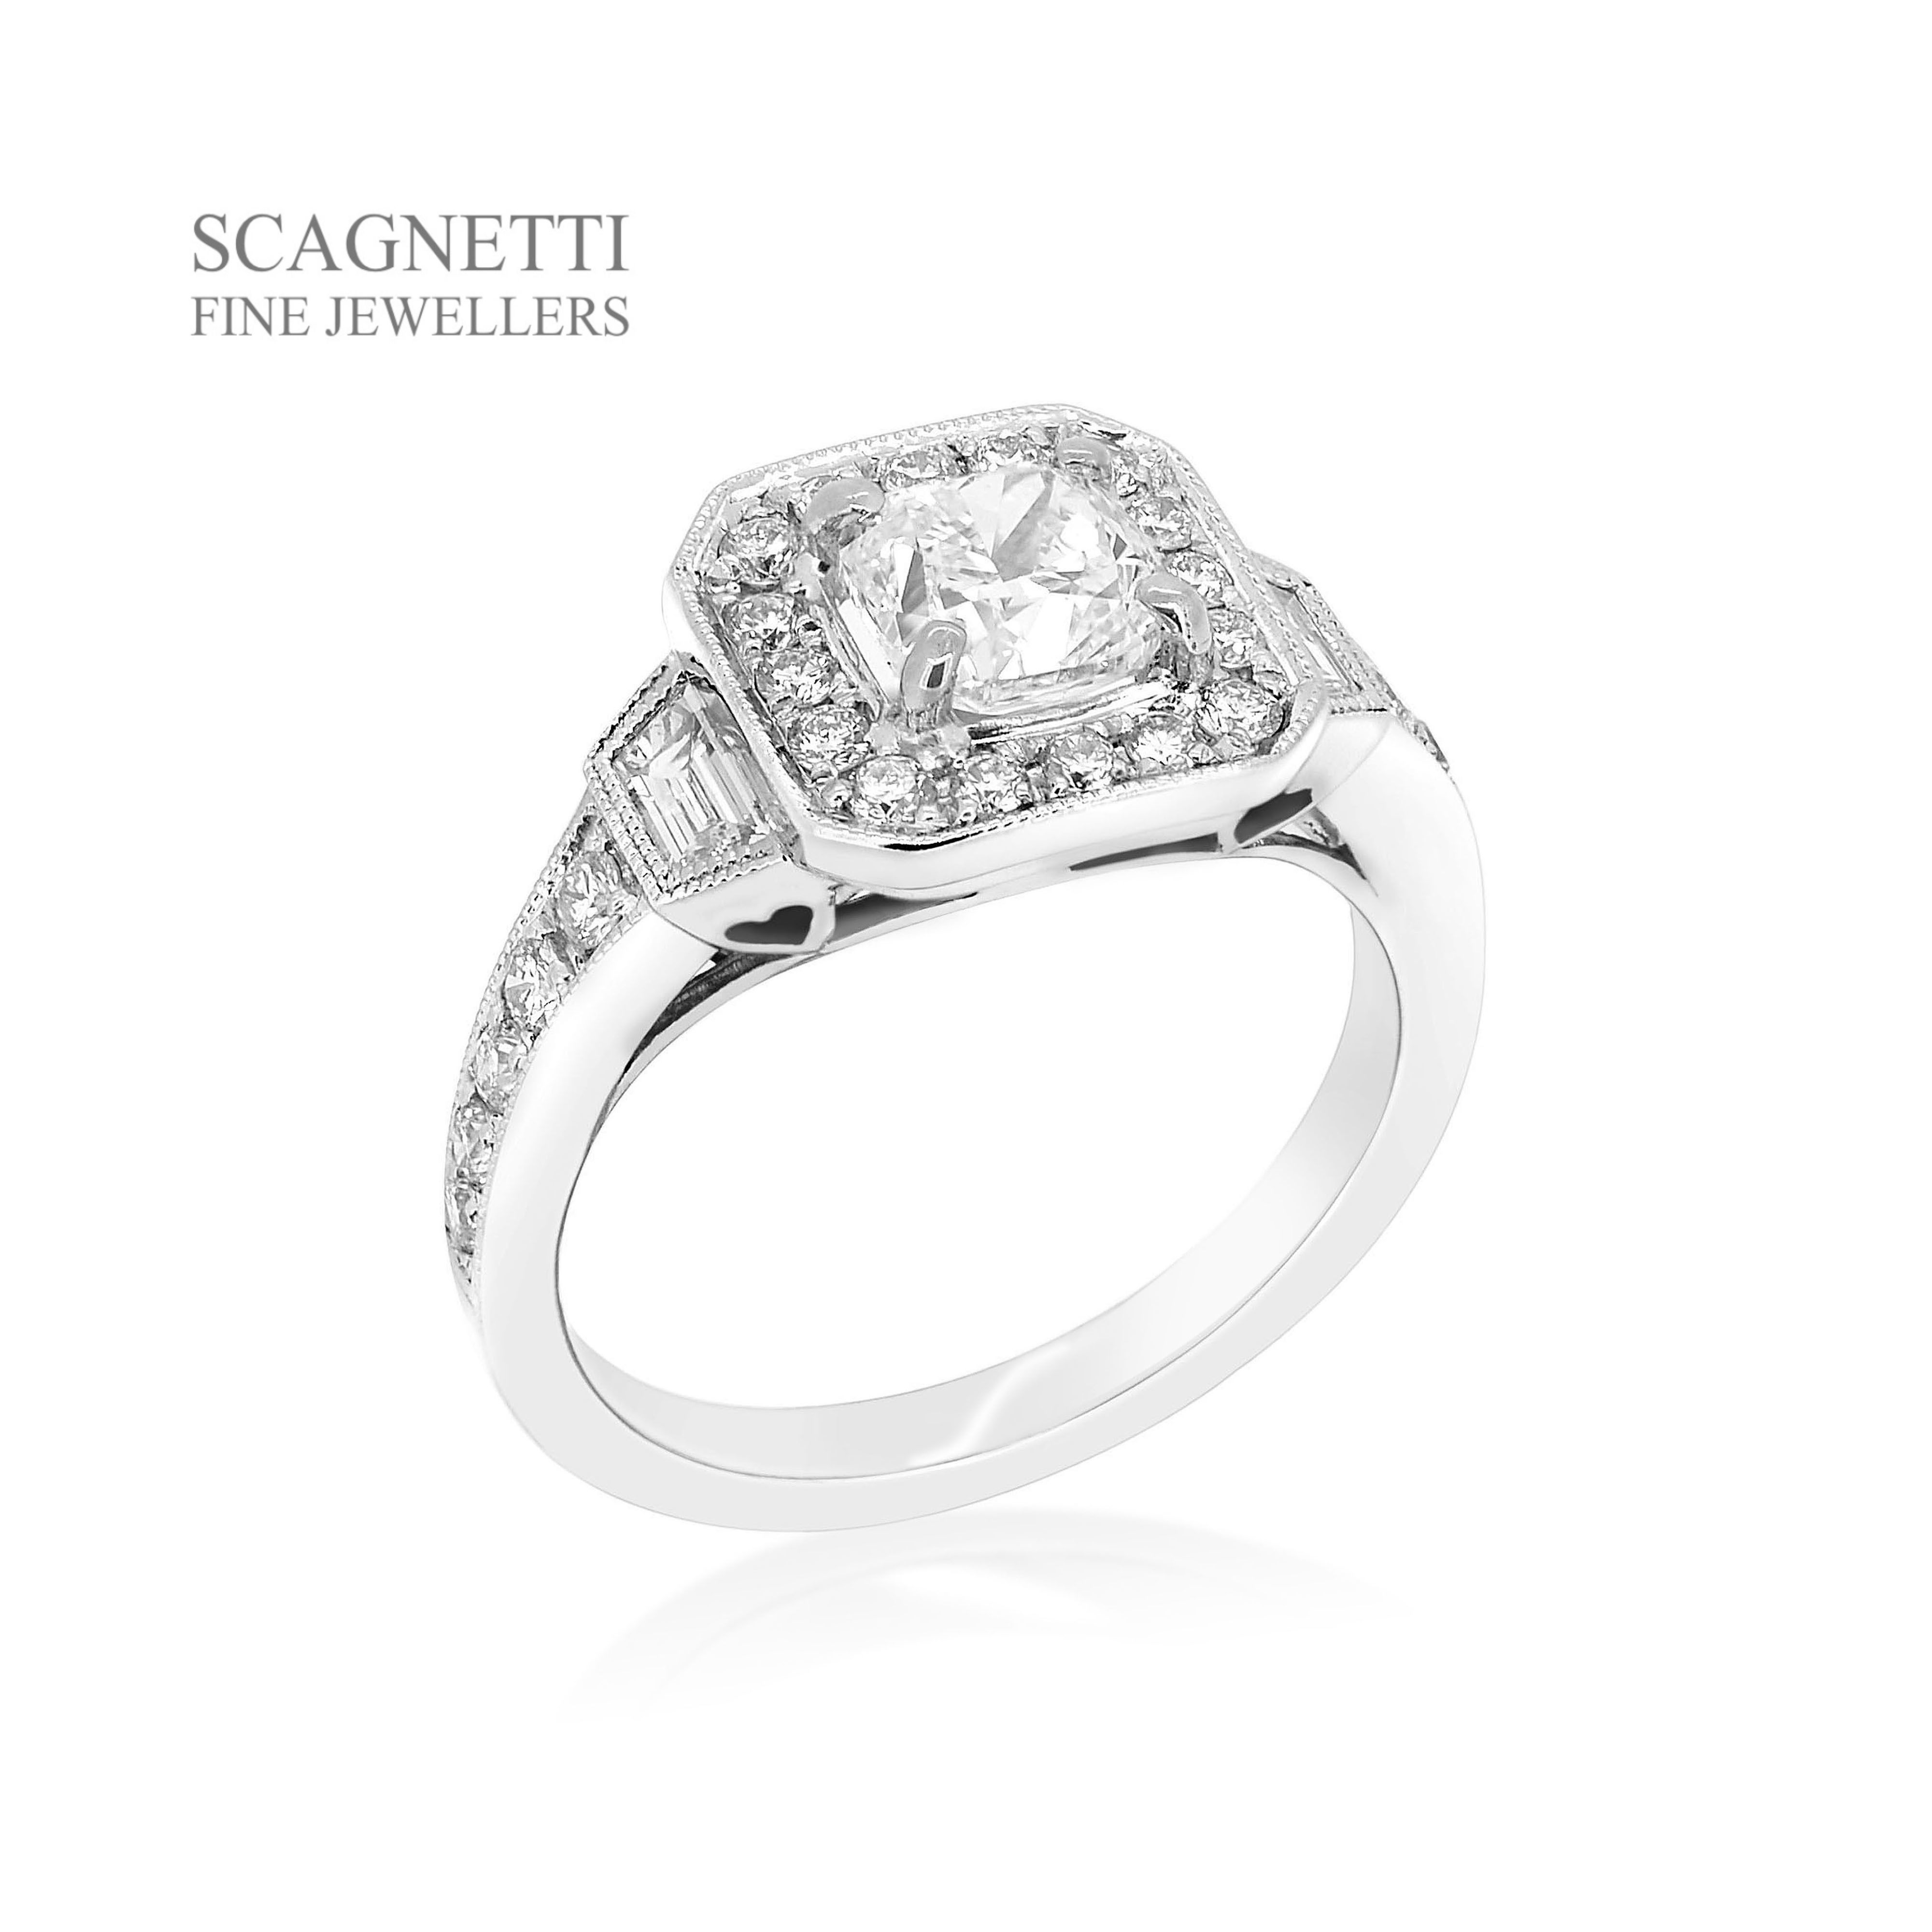 This ring features a beautiful cushion cut diamond shown off by a